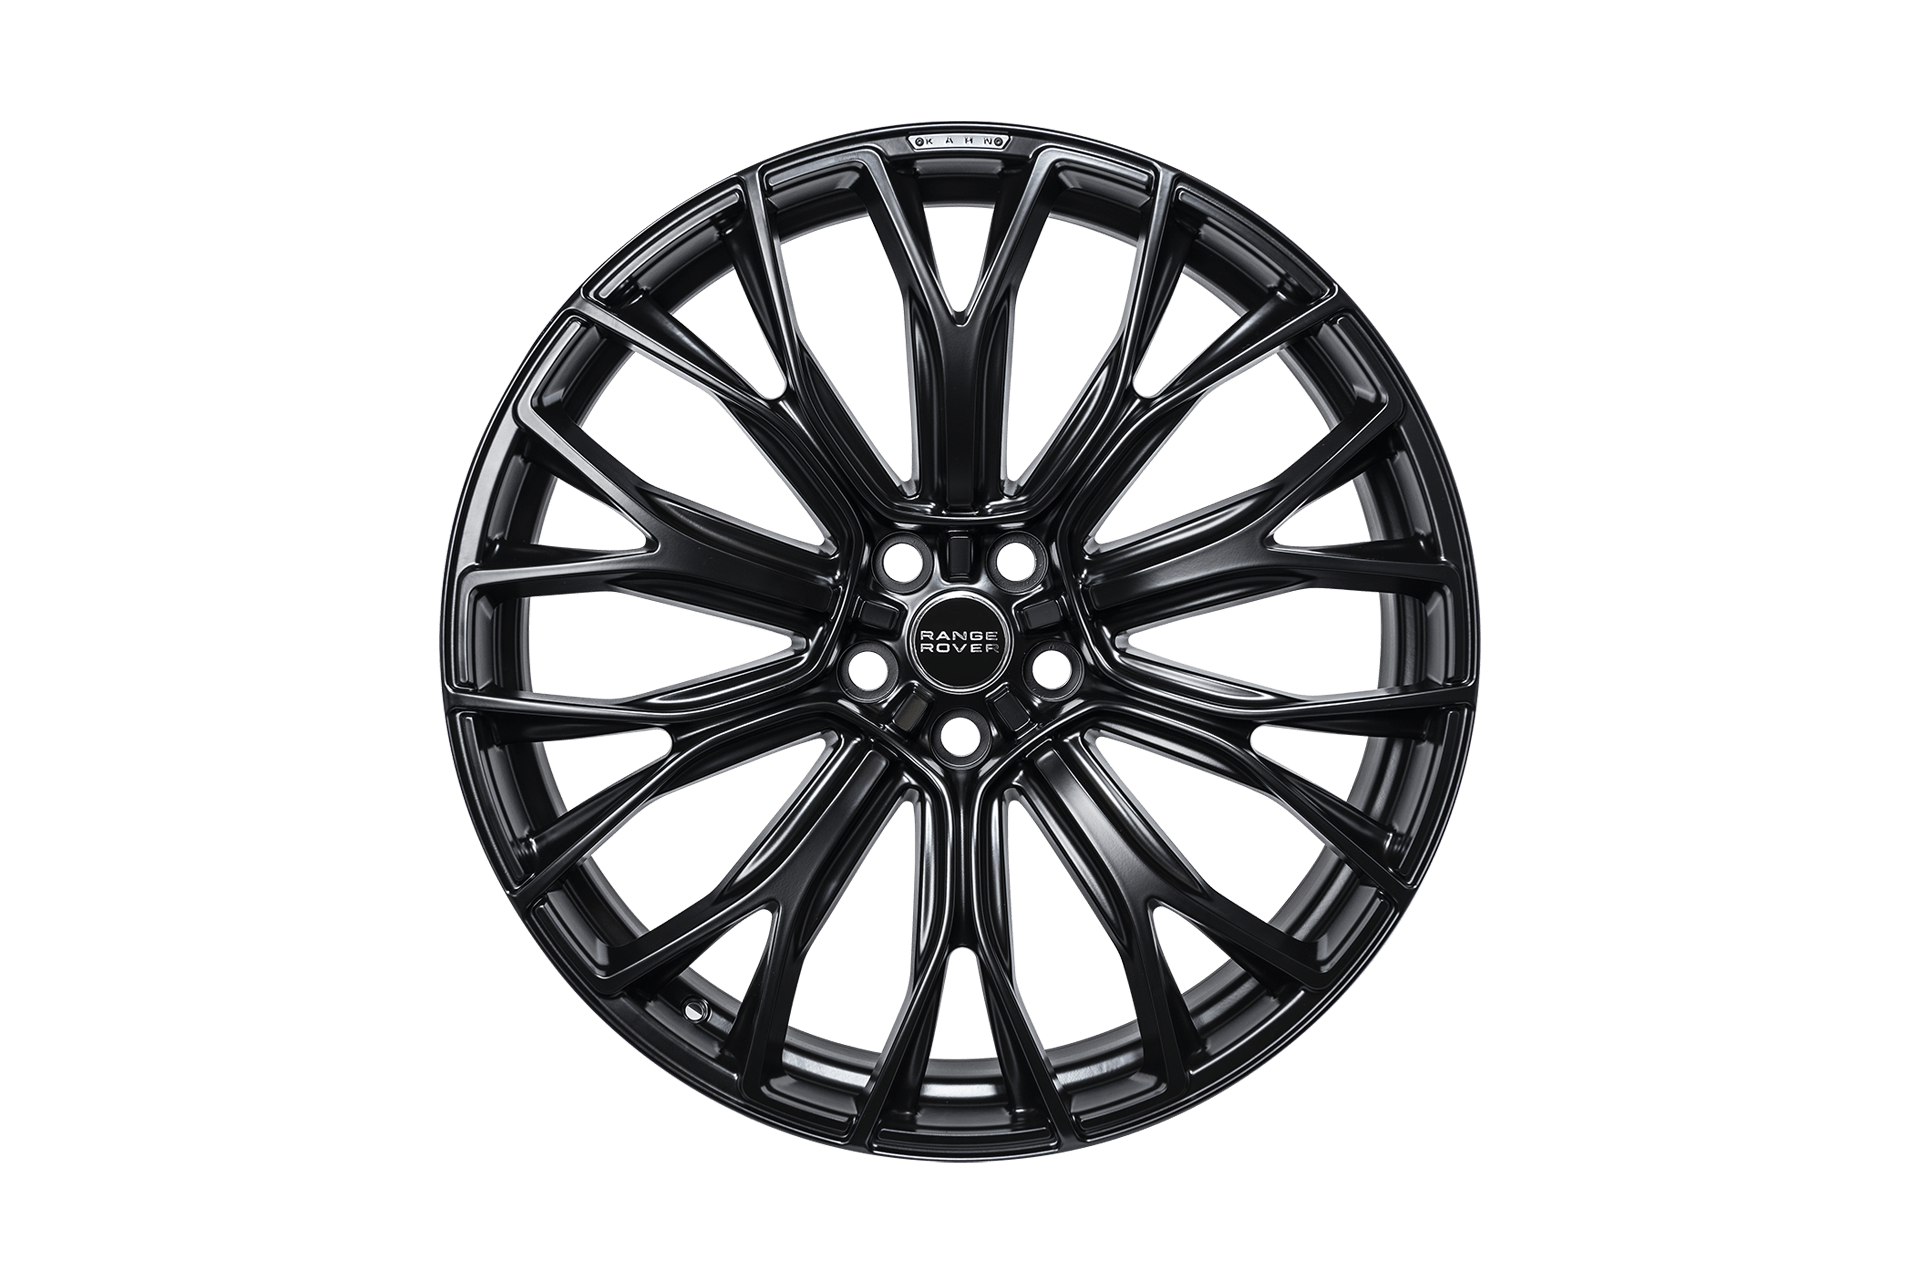 Range Rover Sport Svr (2015-2018) Type 25 Rs-Forged Alloy Wheels by Kahn - Image 3125